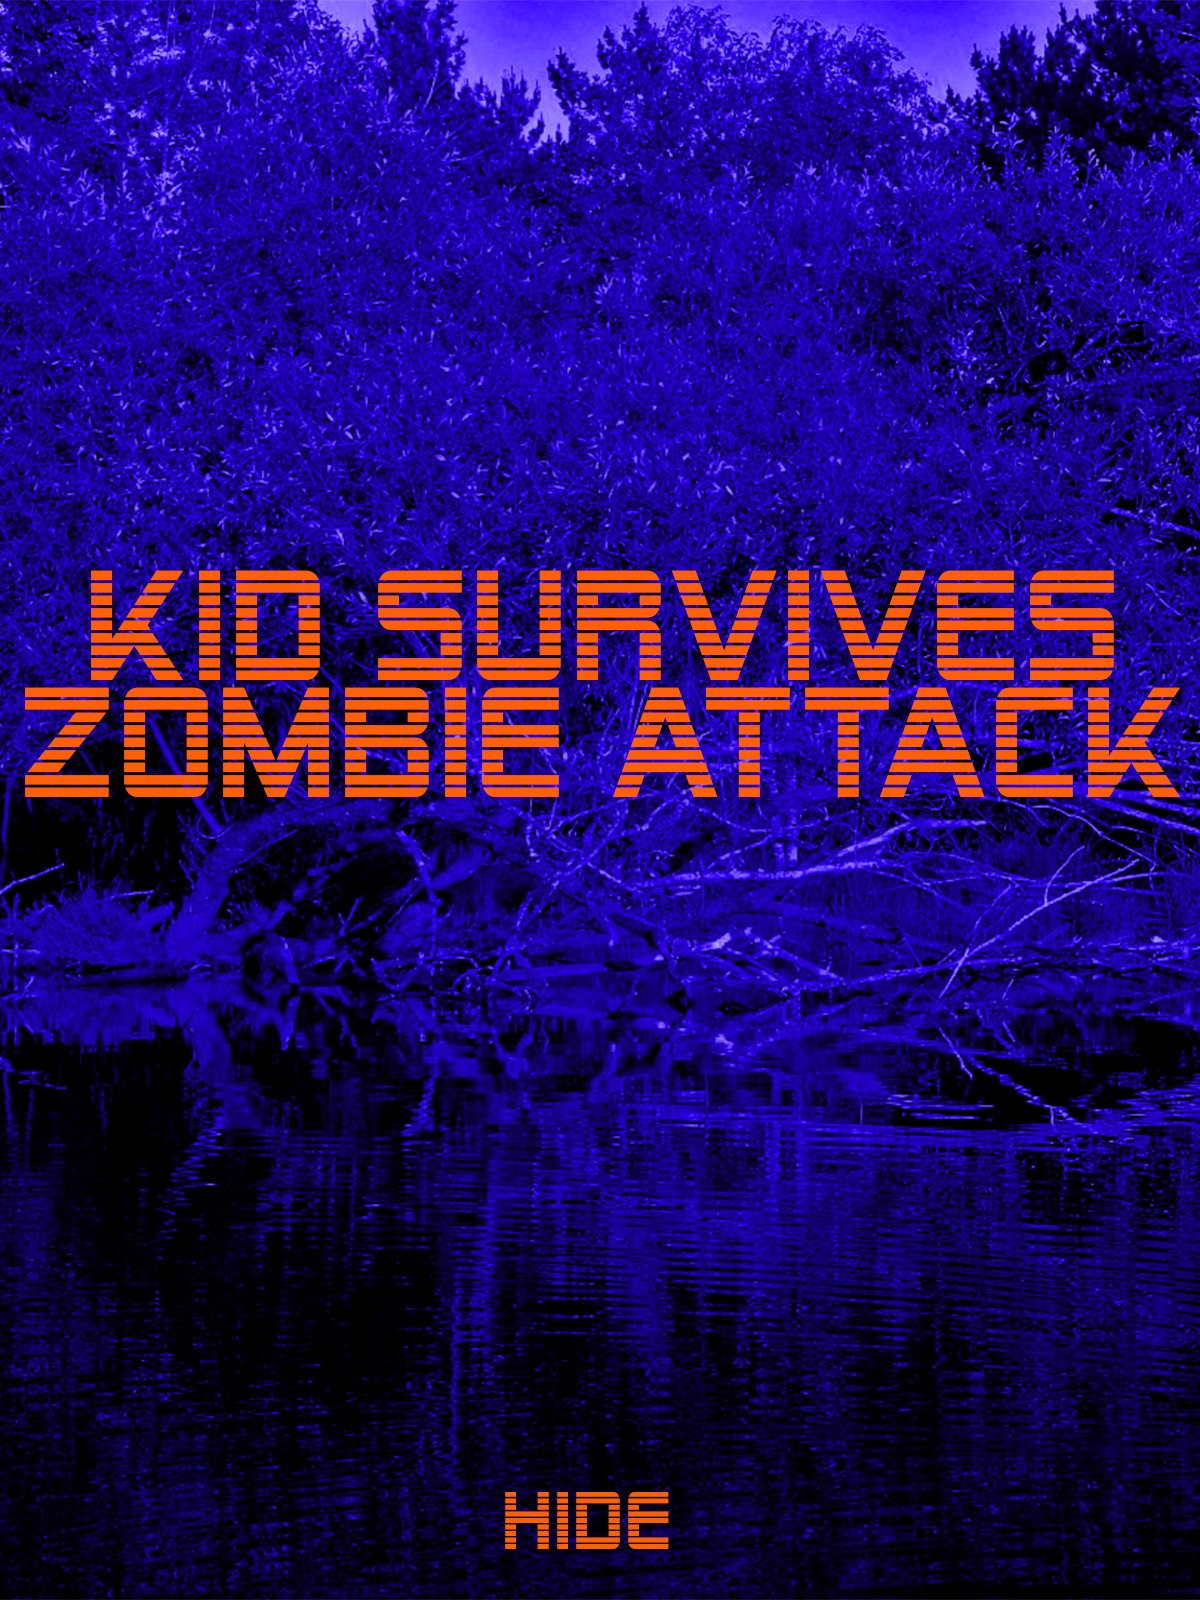 Kid Survives Zombie Attack